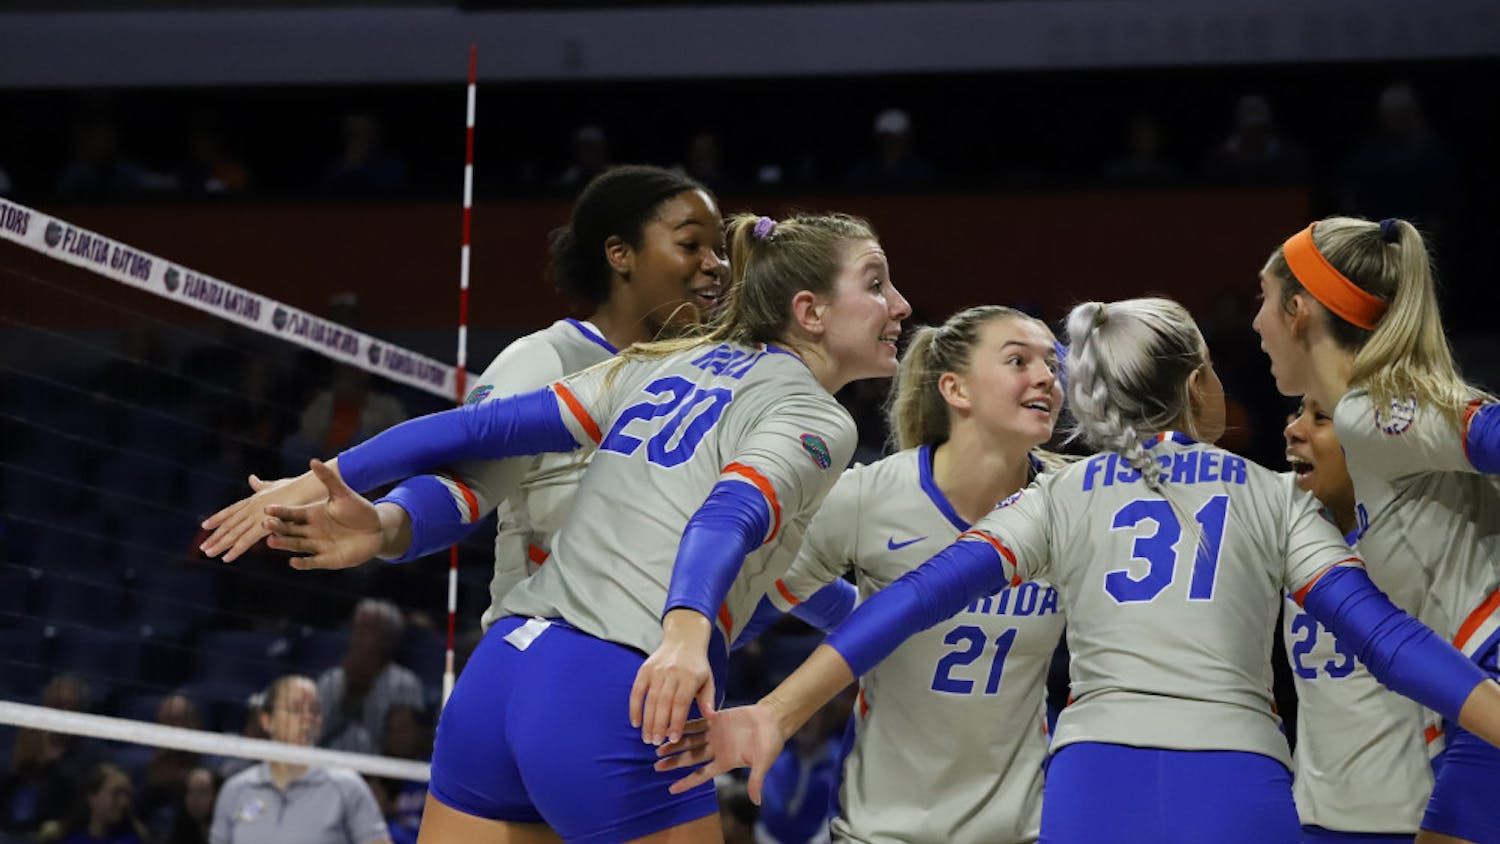 The Gators congregate in a huddle formation at their game against LSU last season. Florida dropped its second match of the season Friday night when it lost to Georgia, 3-1.